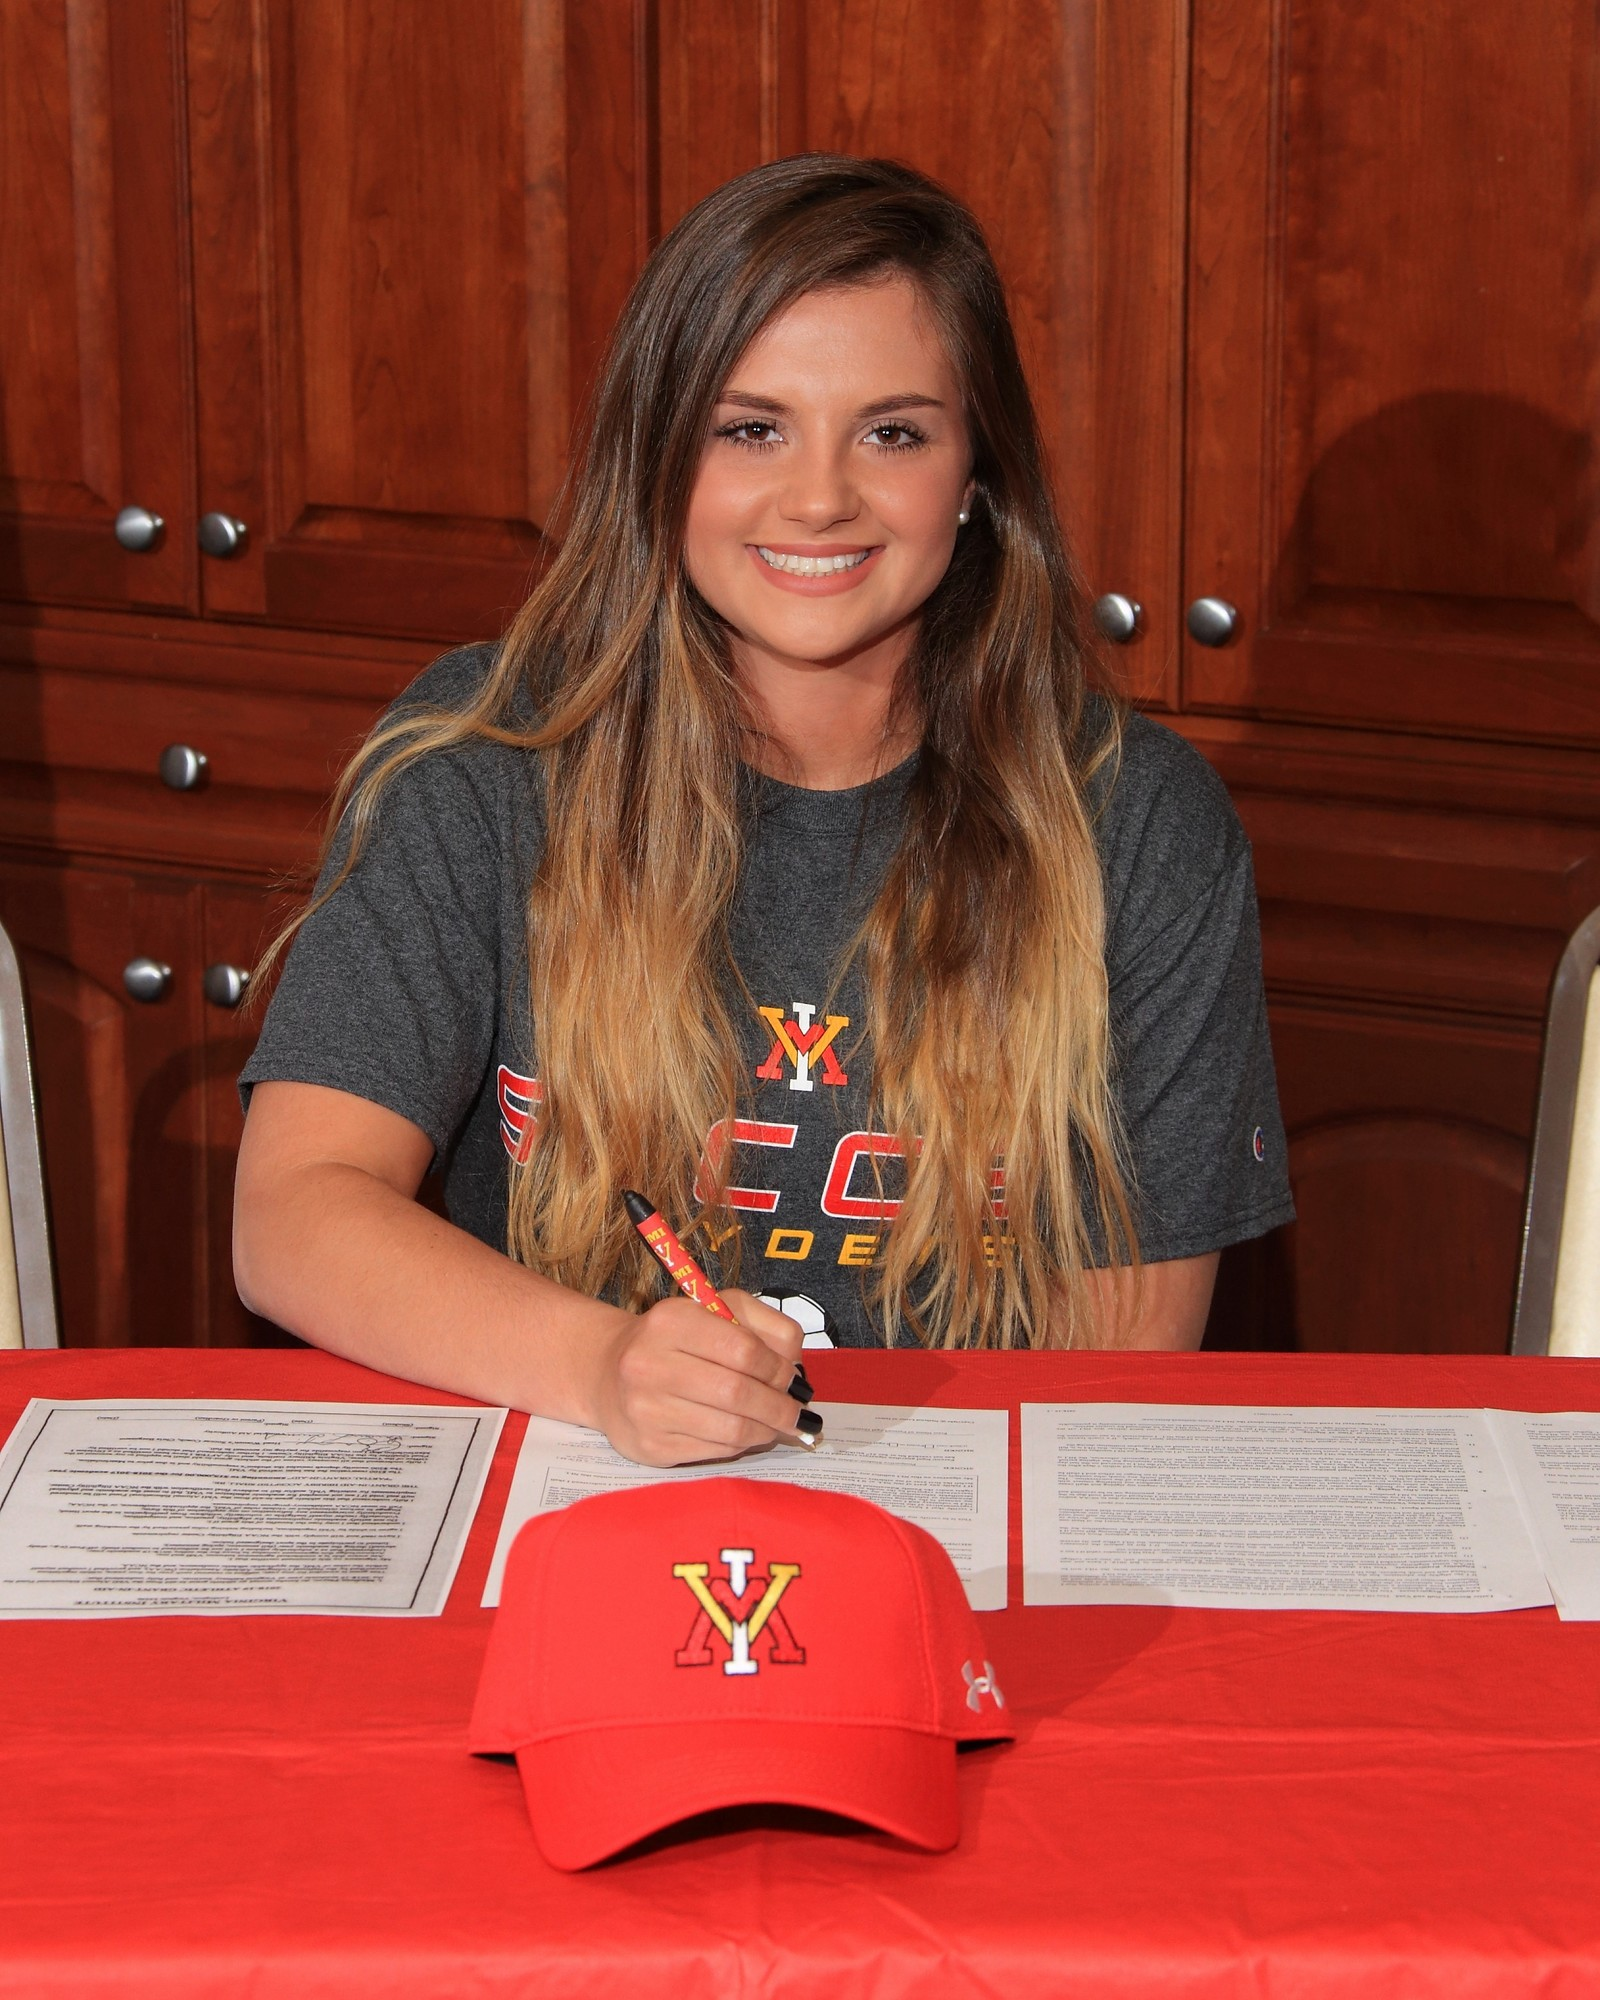 Photo provided  Sumter native Madison Player has signed to play college soccer with Virginia Military Institute in Lexington, Va. She is the daughter of Roger and Kellee Player of Danville, Virginia, and the granddaughter of Jane Player PriVette of Sumter.